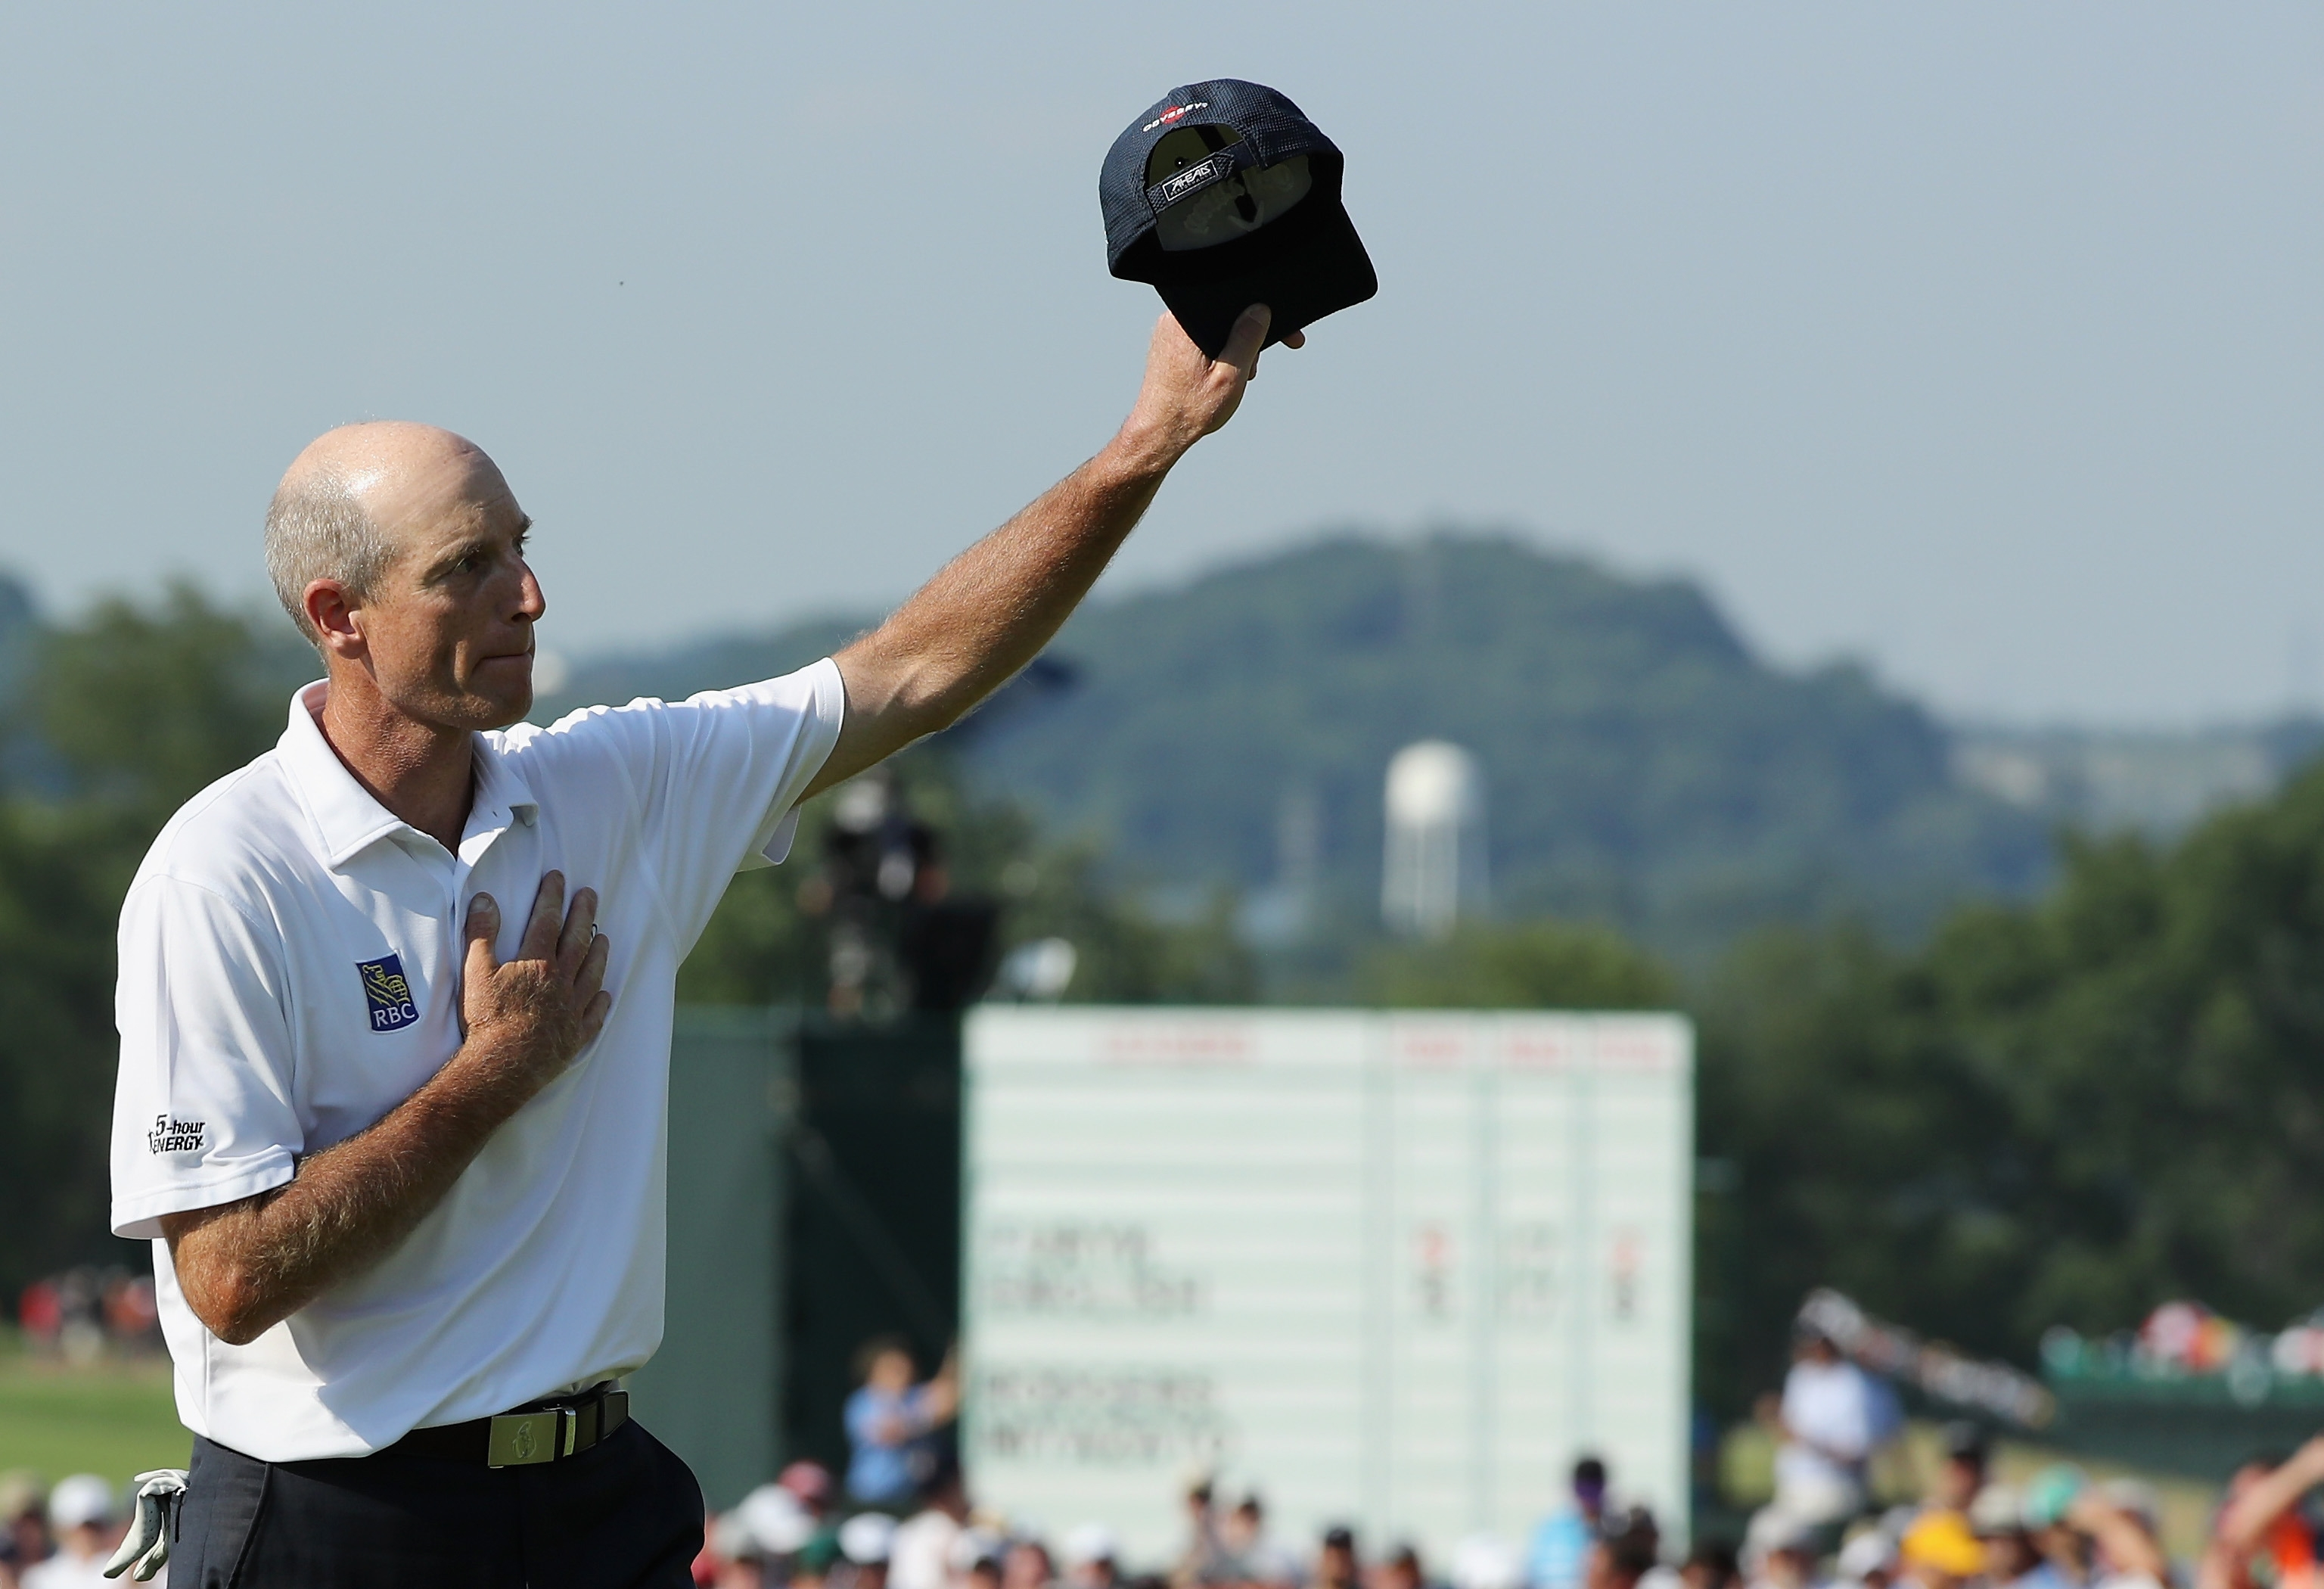 Jim Furyk was a favorite of the Western Pennsylvania gallery as he moved up the leader board on Sunday in the U.S. Open.